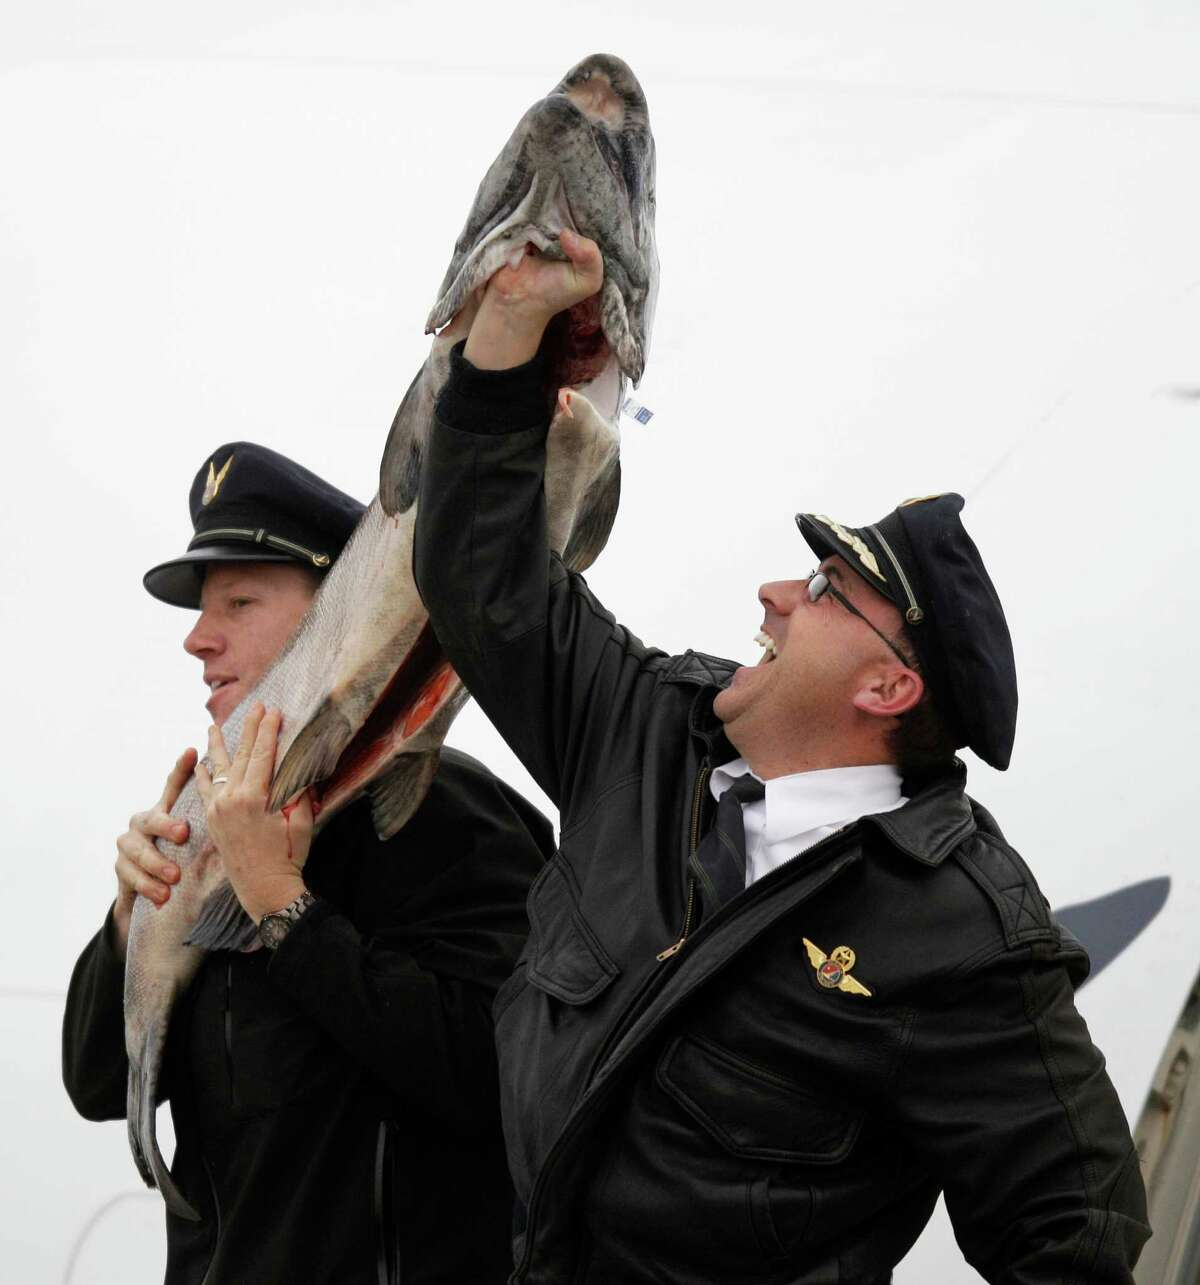 Alaska Airlines Capt. Trent Davey, right, and first officer Andy Kullick, left, hold up a 55 lb. Copper River King Salmon, Friday, May 18, 2012, as the annual first air shipment of the prized salmon arrived from Alaska early Friday morning in Seattle. Copper River salmon are prized for their high oil content and flavor. They typically bring the highest prices at restaurants and fish markets.